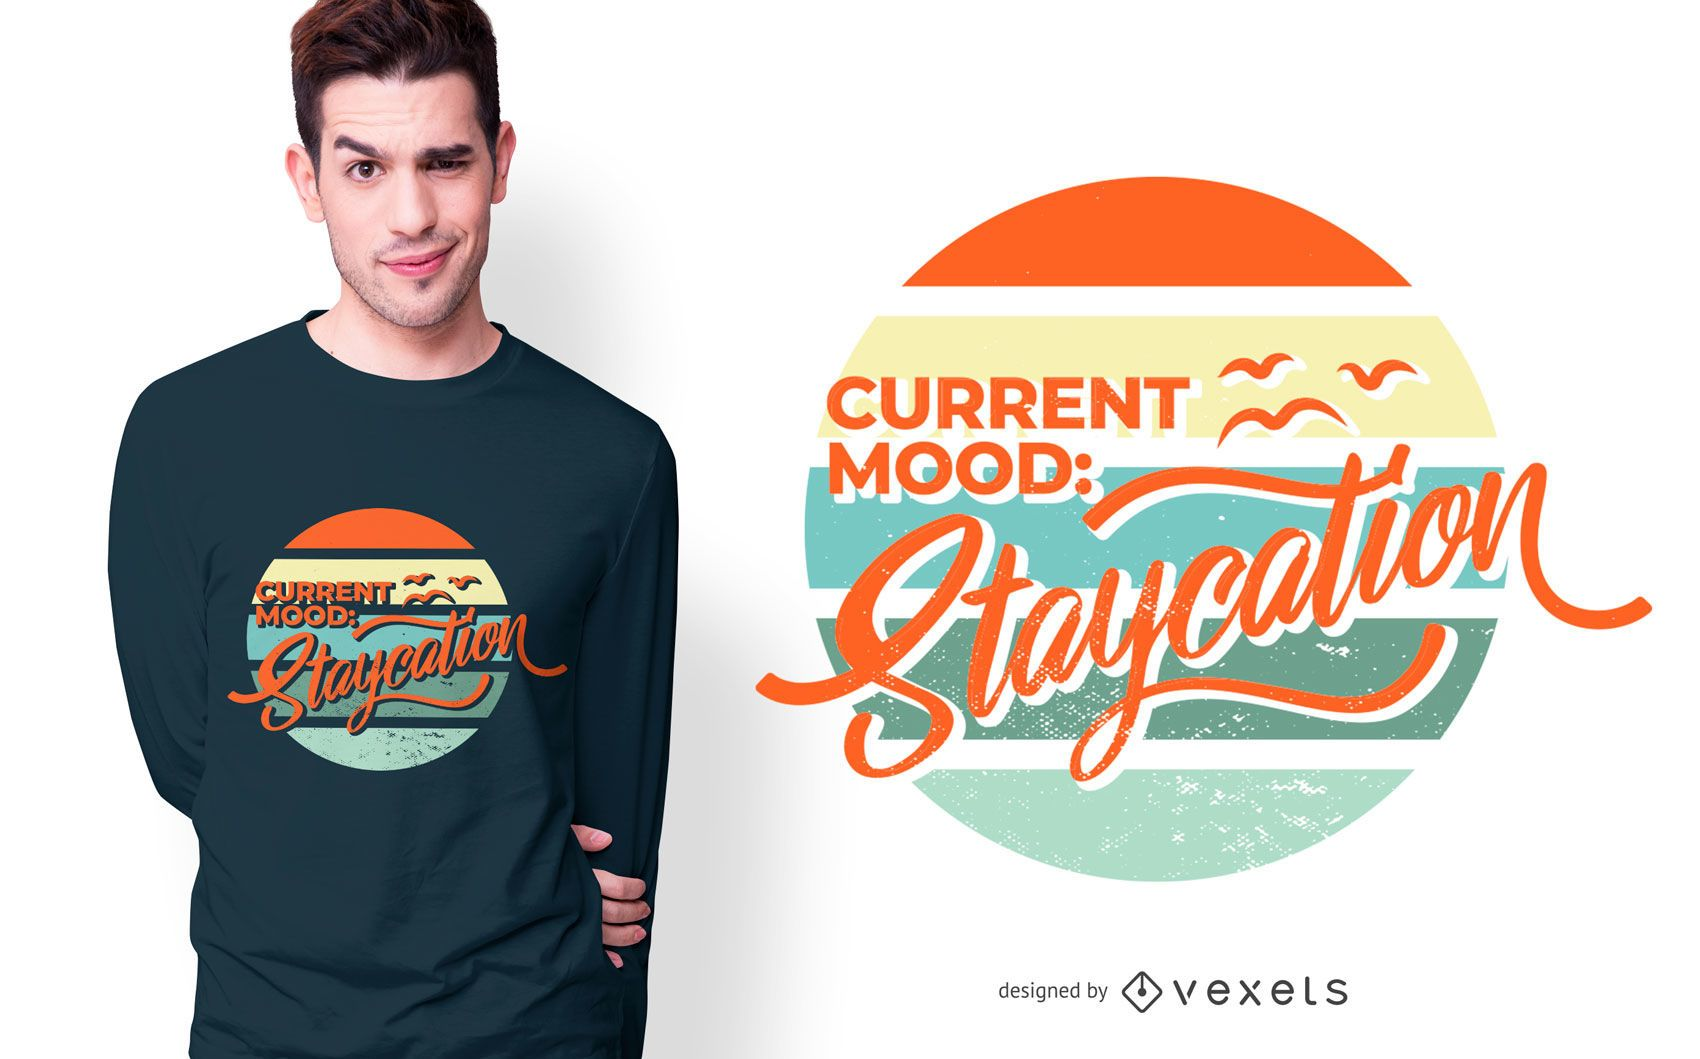 Staycation Vacation Text T-Shirt Design